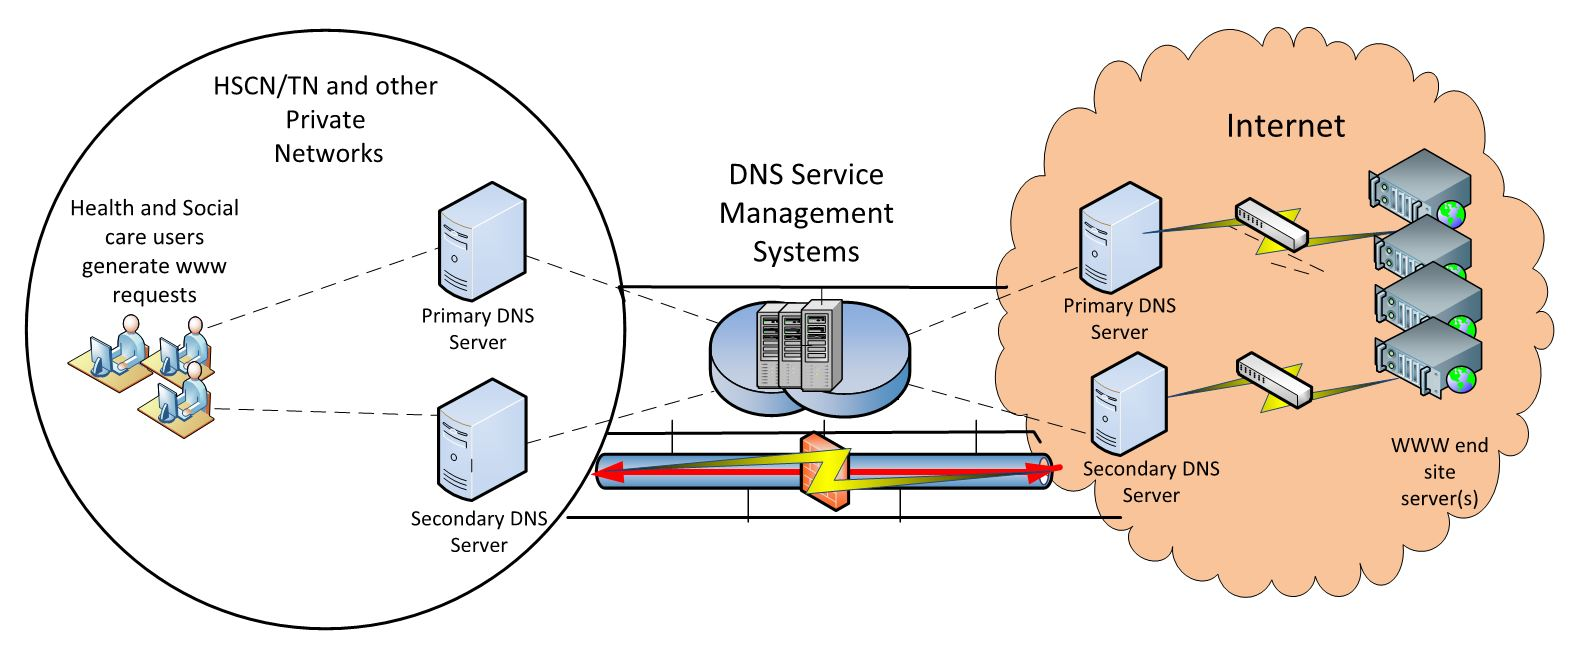 Diagram showing the logical DNS configuration used across HSCN/TN